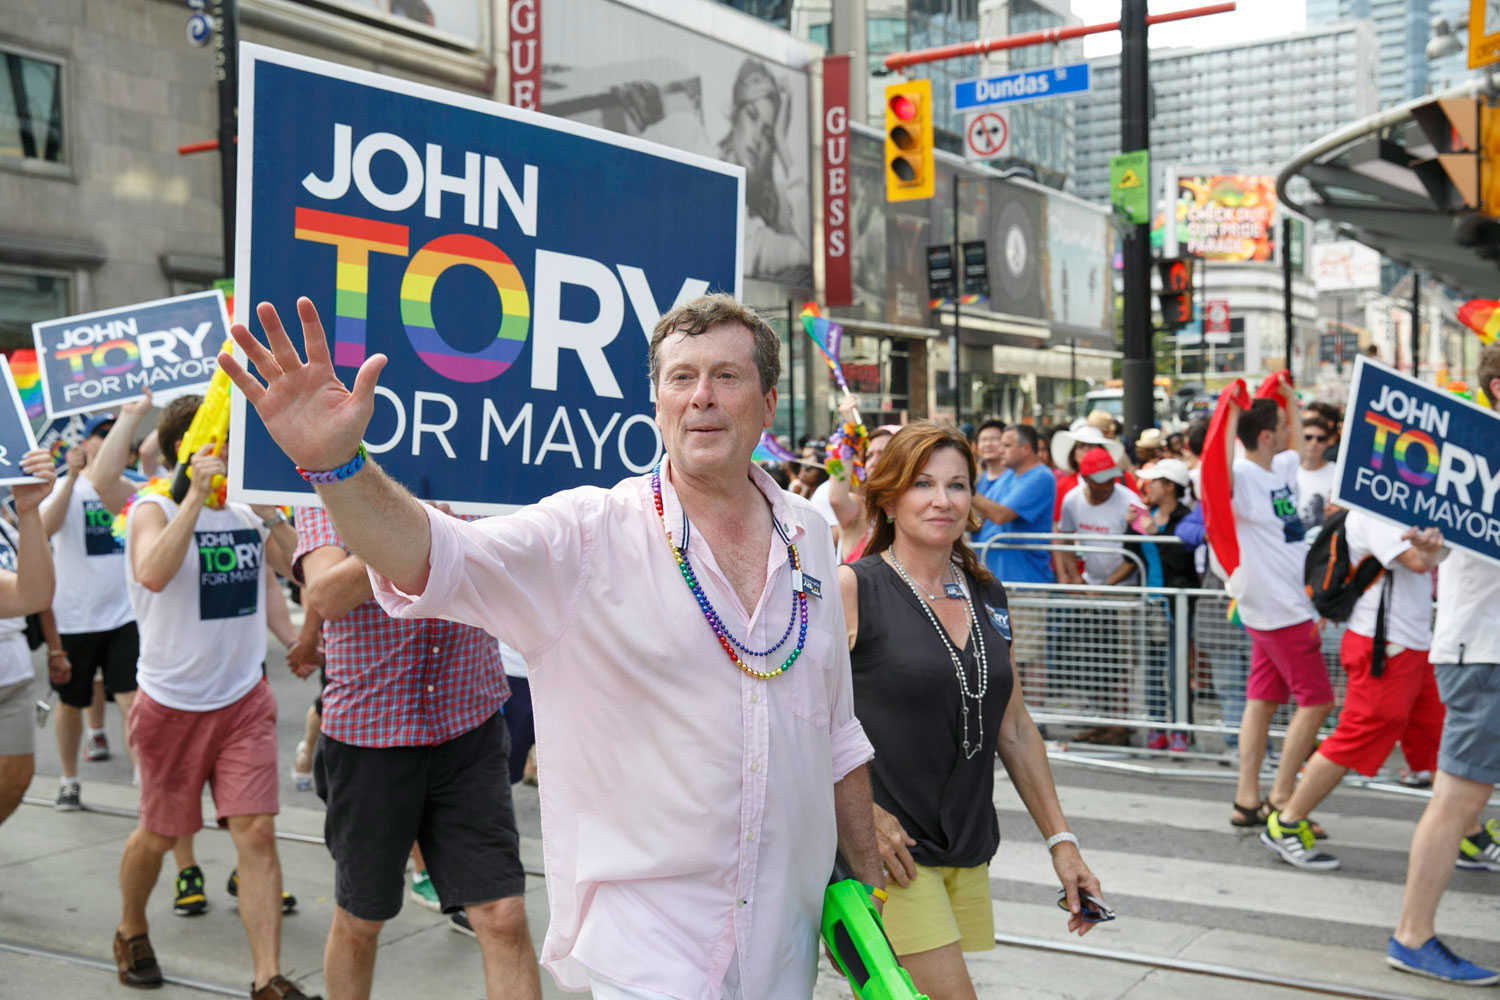 Mayoral candidate John Tory marches in the WorldPride Parade on Yonge Street on June 29, 2014. THE CANADIAN PRESS/Michael Hudson